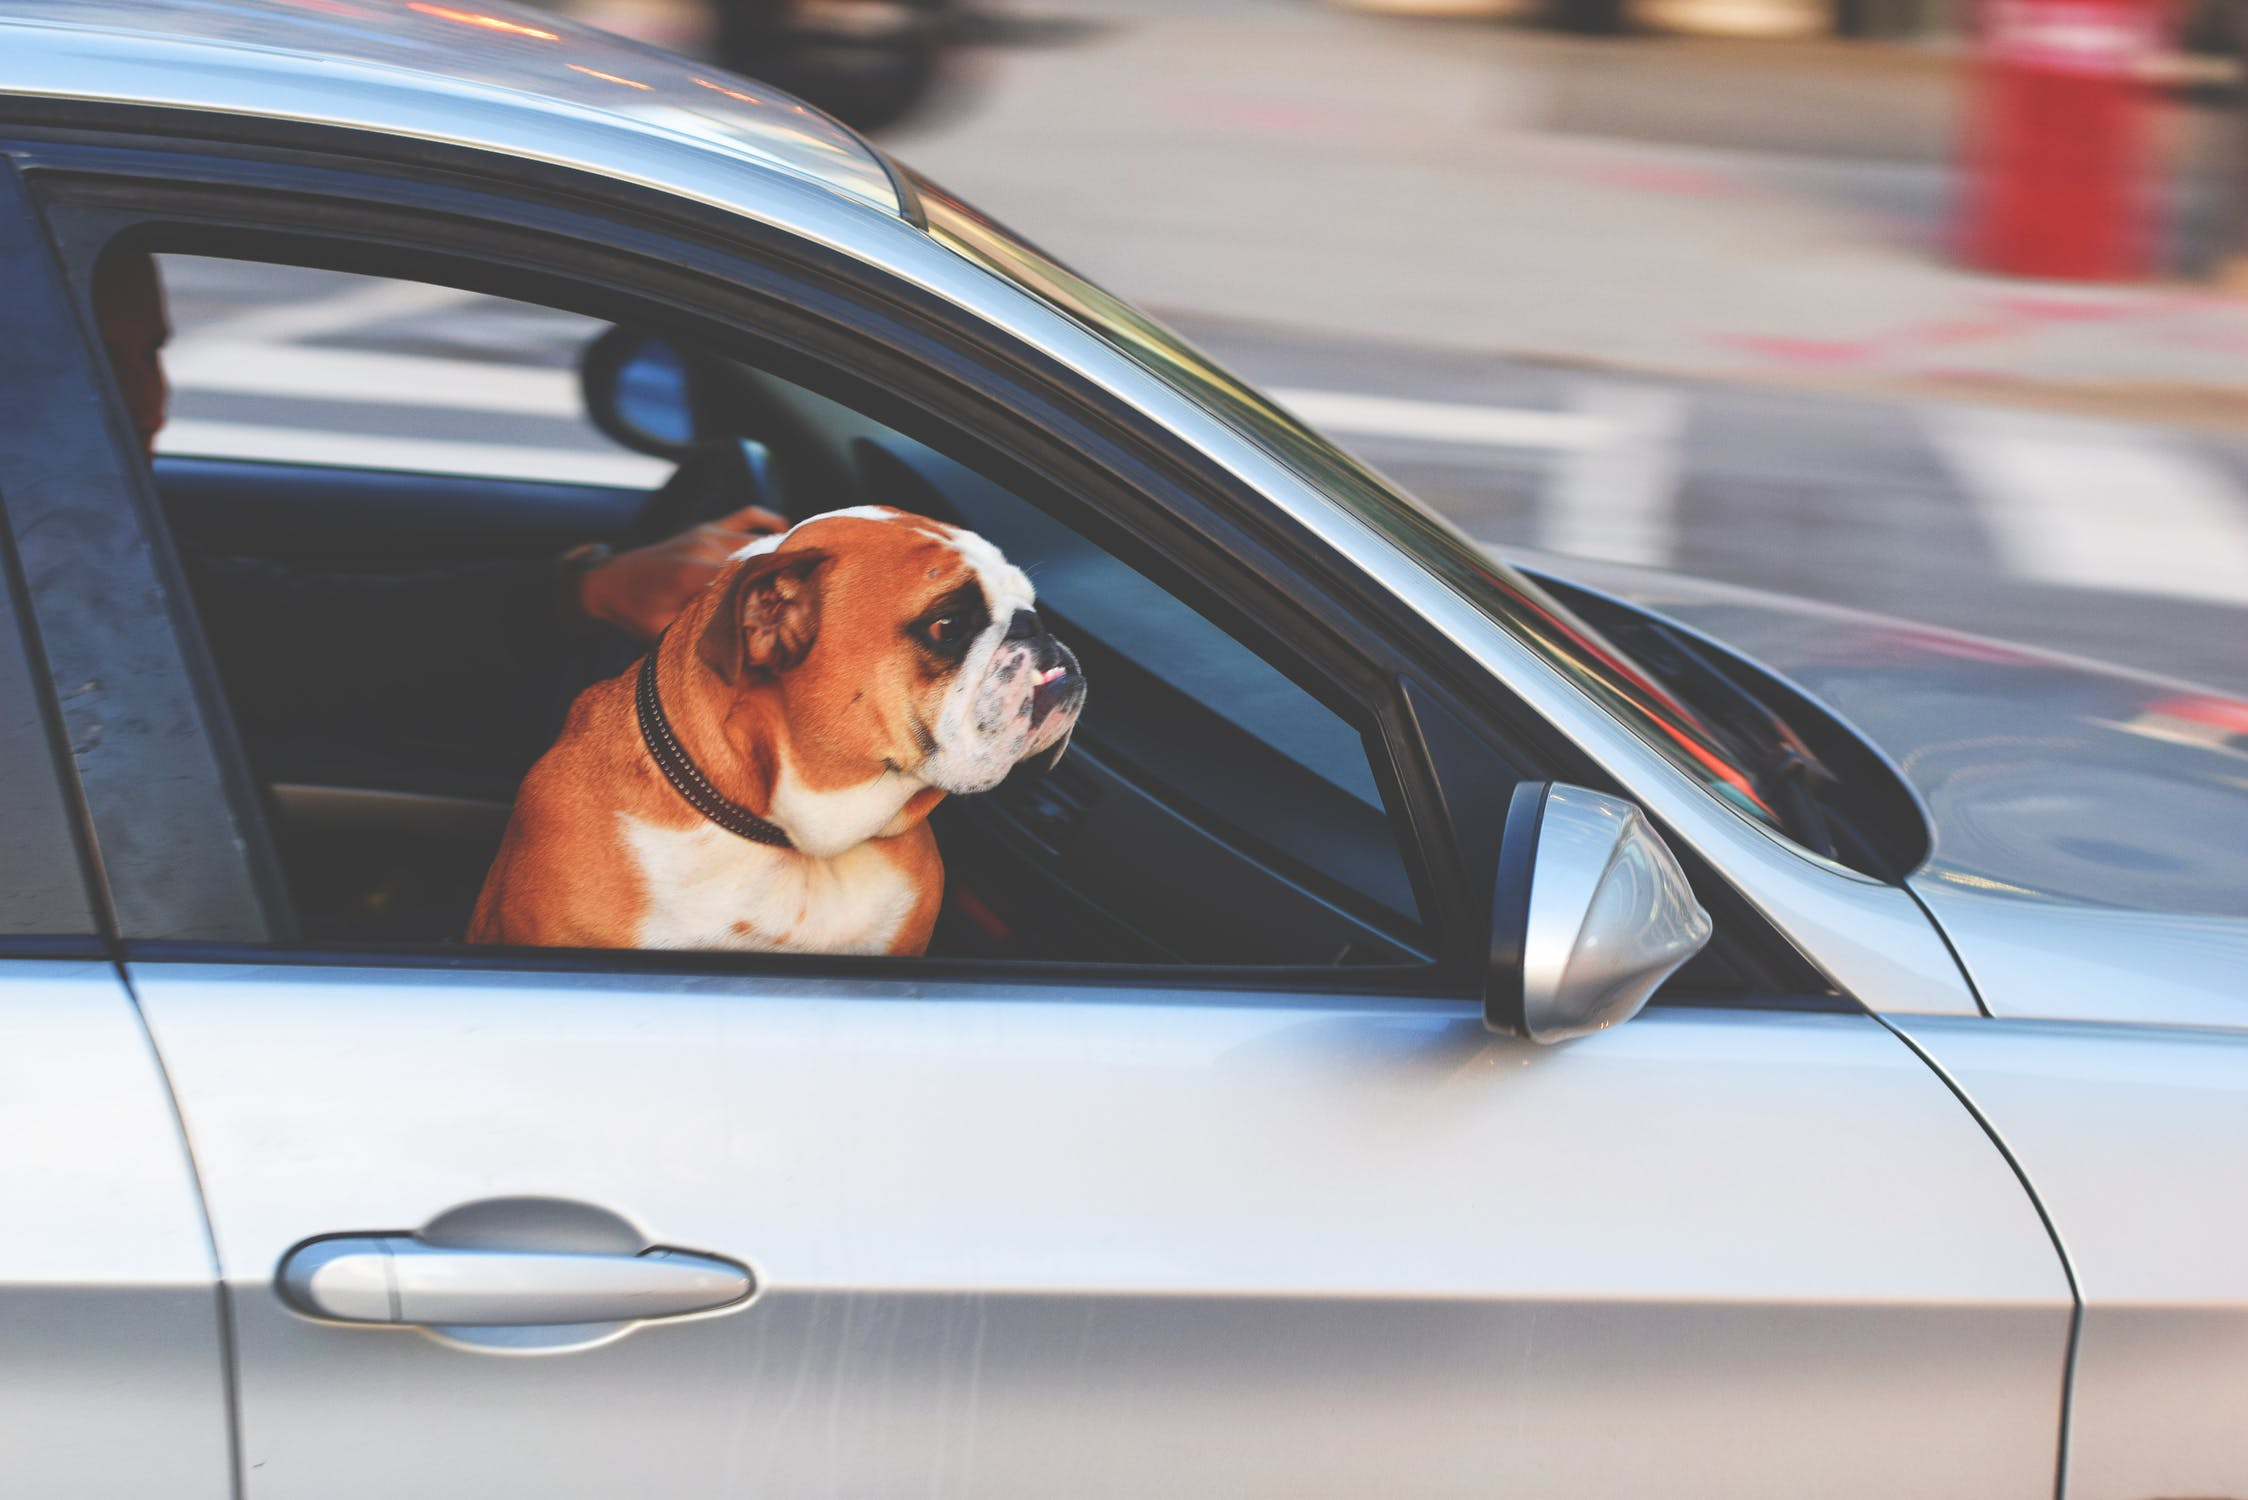 1 in 3 could be breaking the Law When Driving with their Pets, Study Says